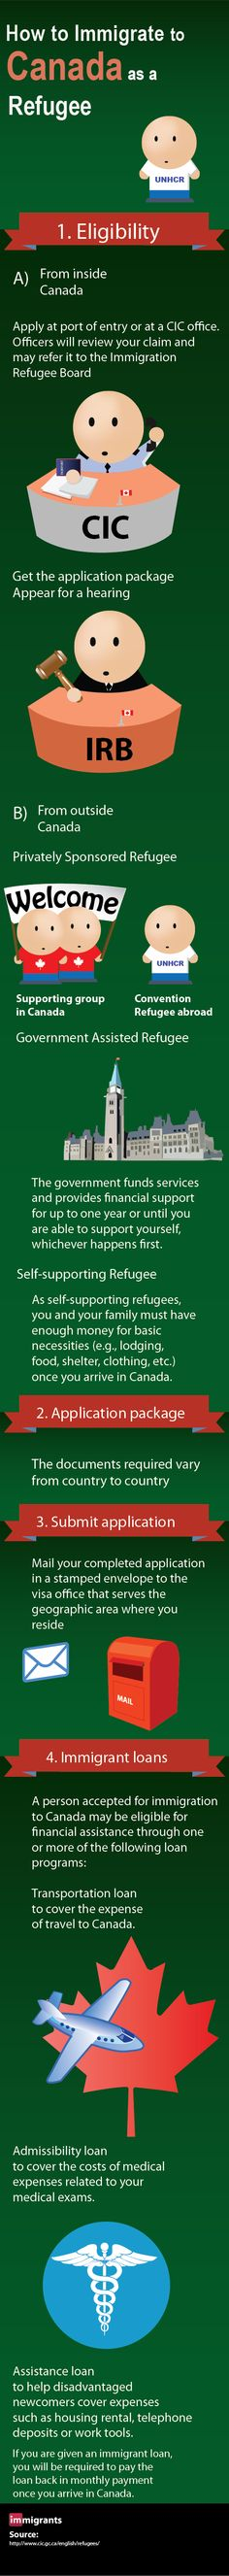 How to immigrate as a refugee